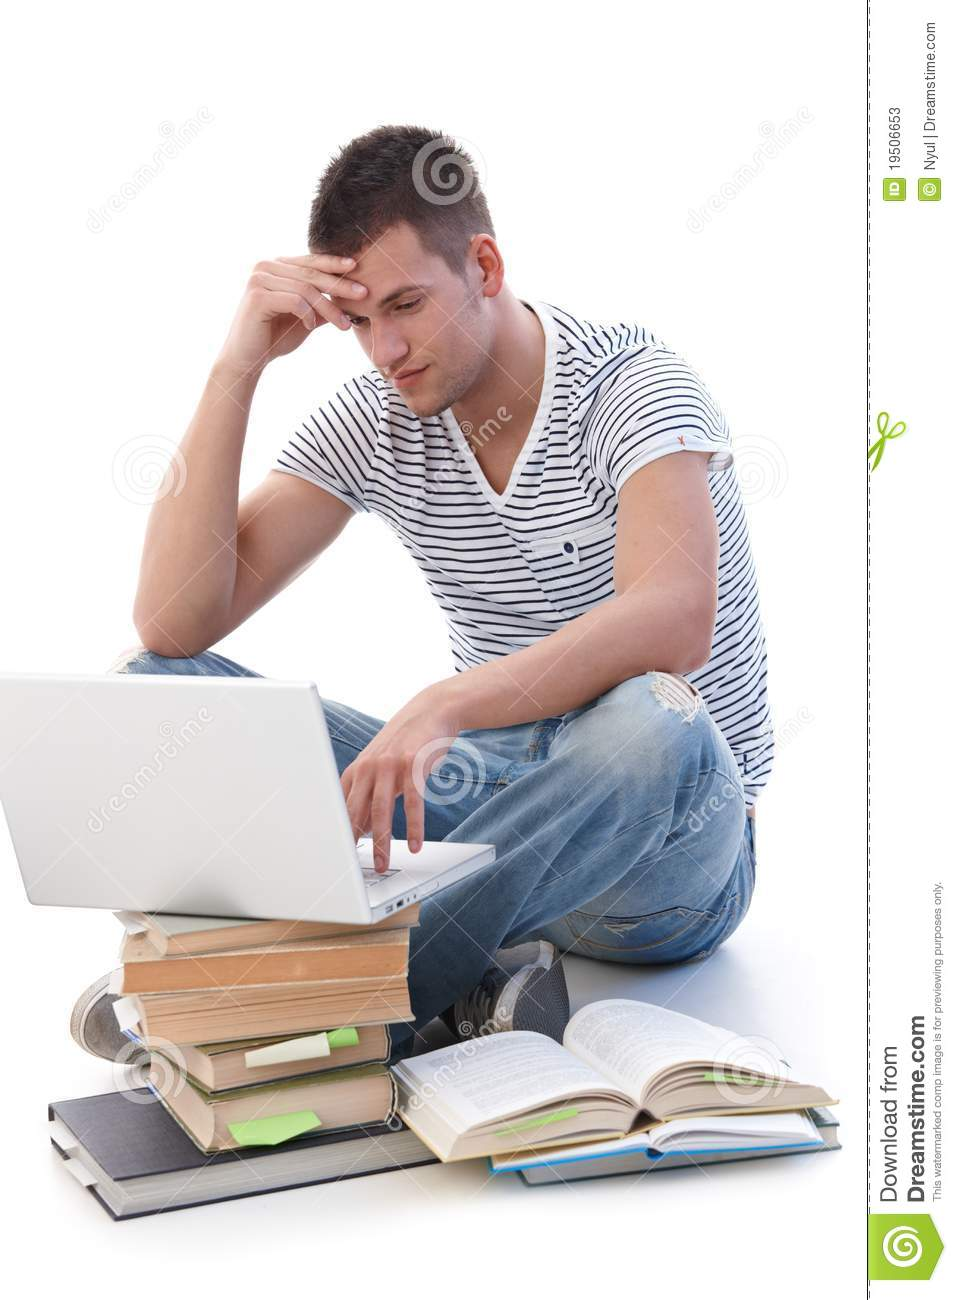 Pay for Essay Writing and Get the Amazing Paper from Expert Essay Writer